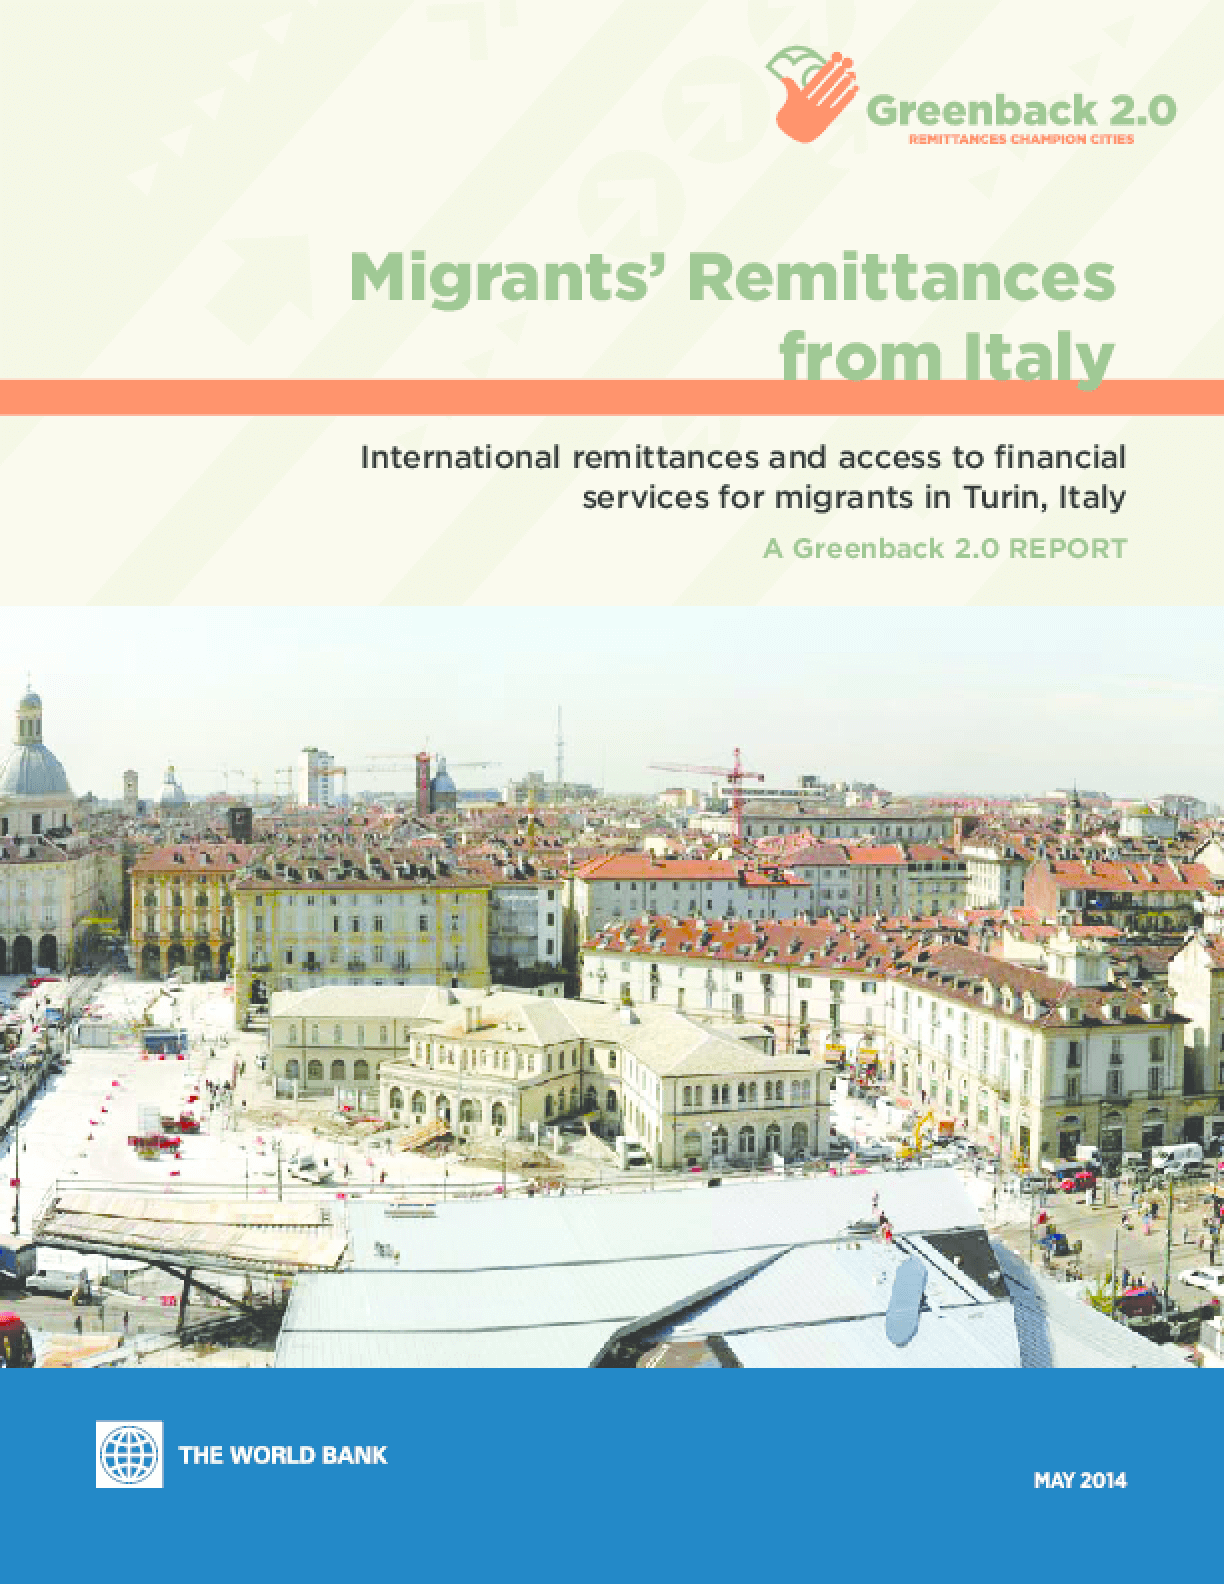 Migrants' Remittances from Italy: International Remittances and Access to Financial Services for Migrants in Turin, Italy